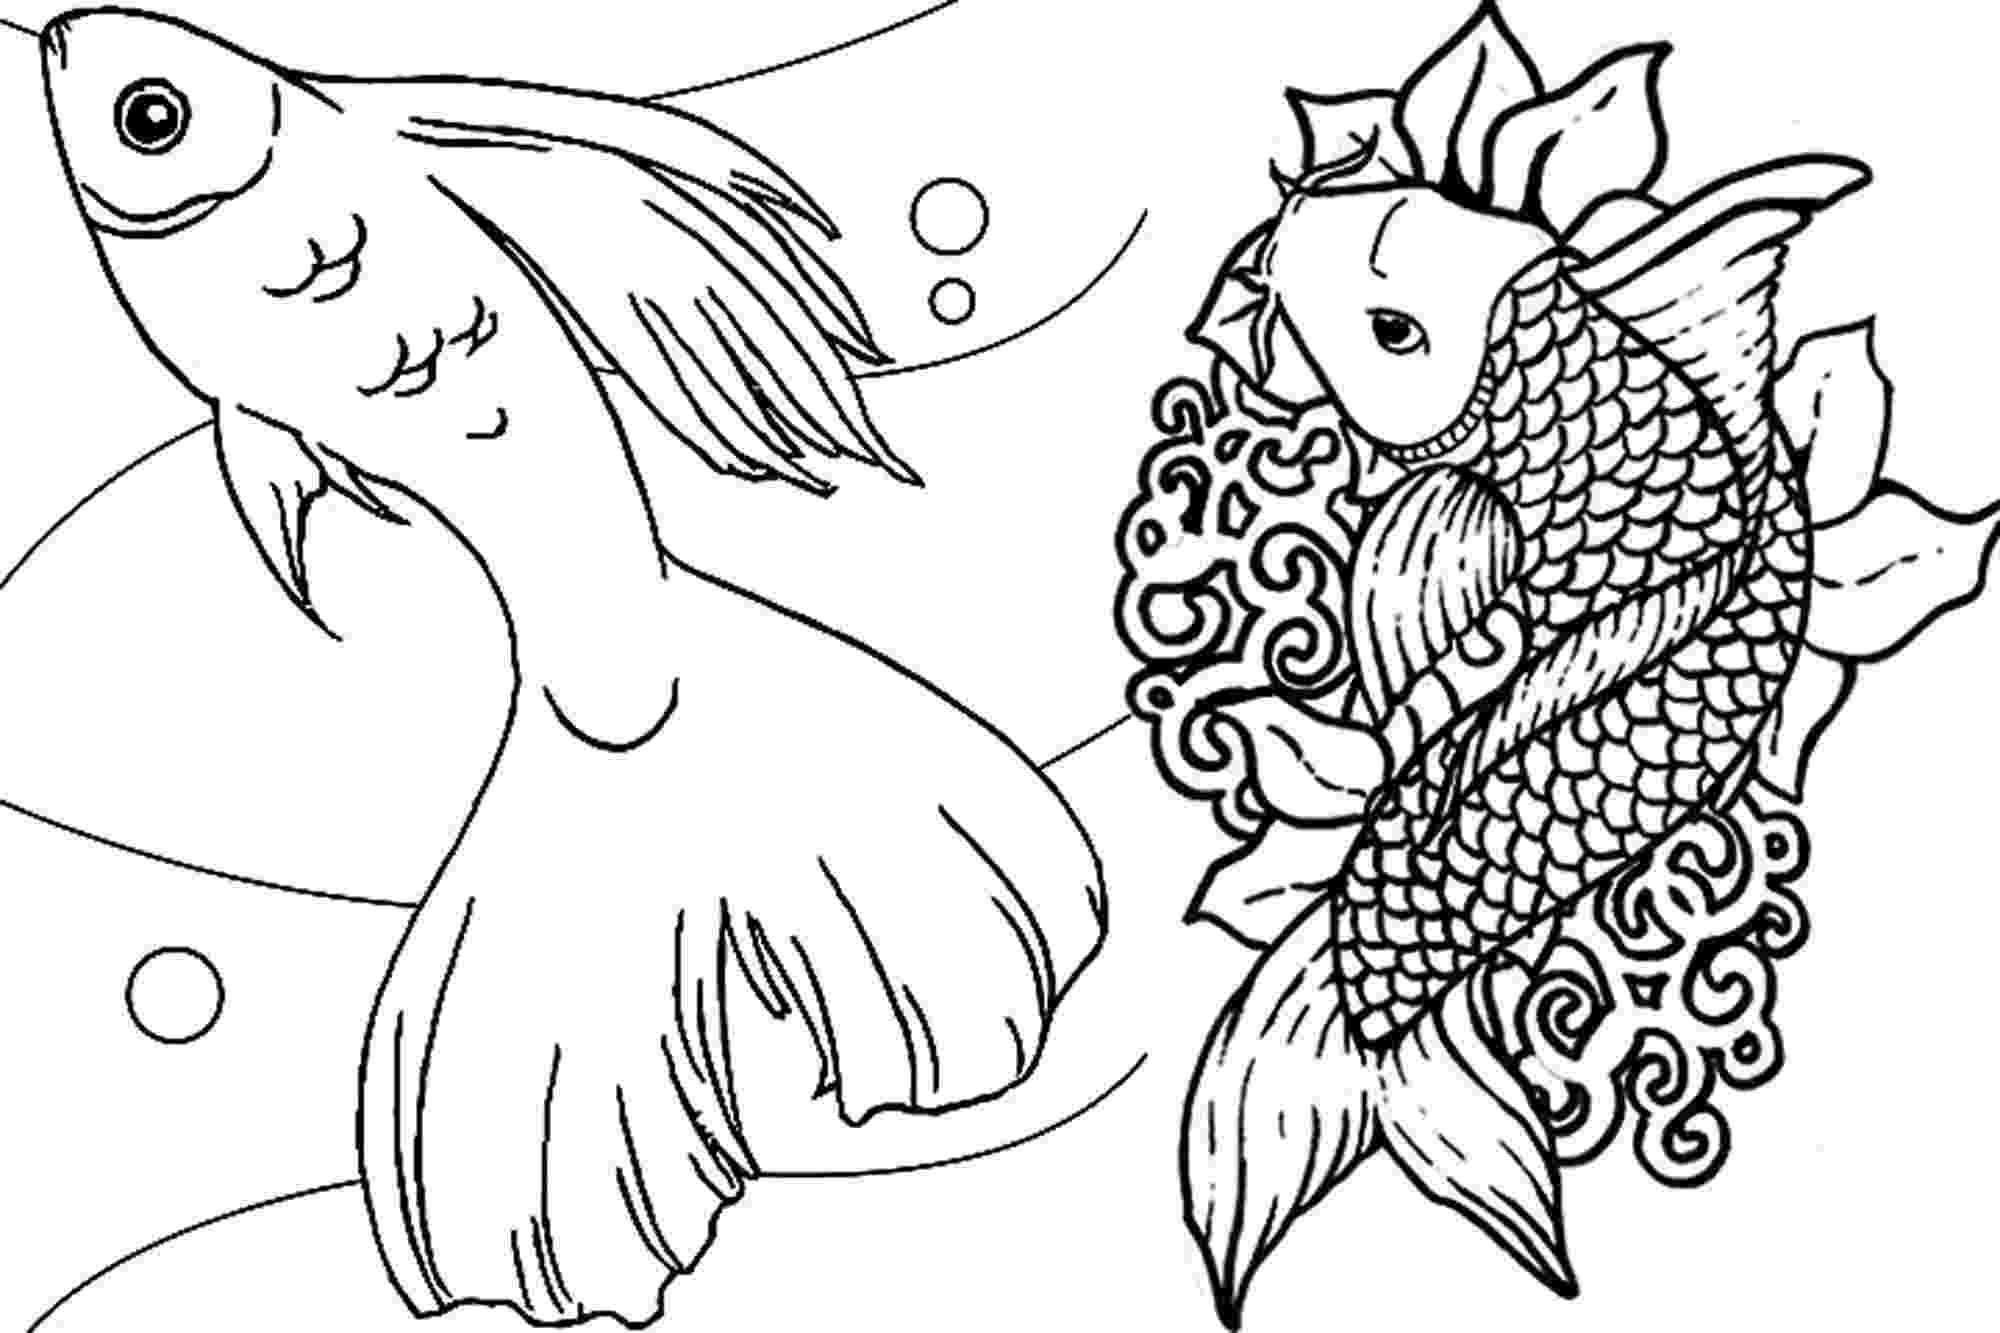 fish coloring pages for adults fish coloring pages for adults timeless miraclecom fish coloring pages for adults